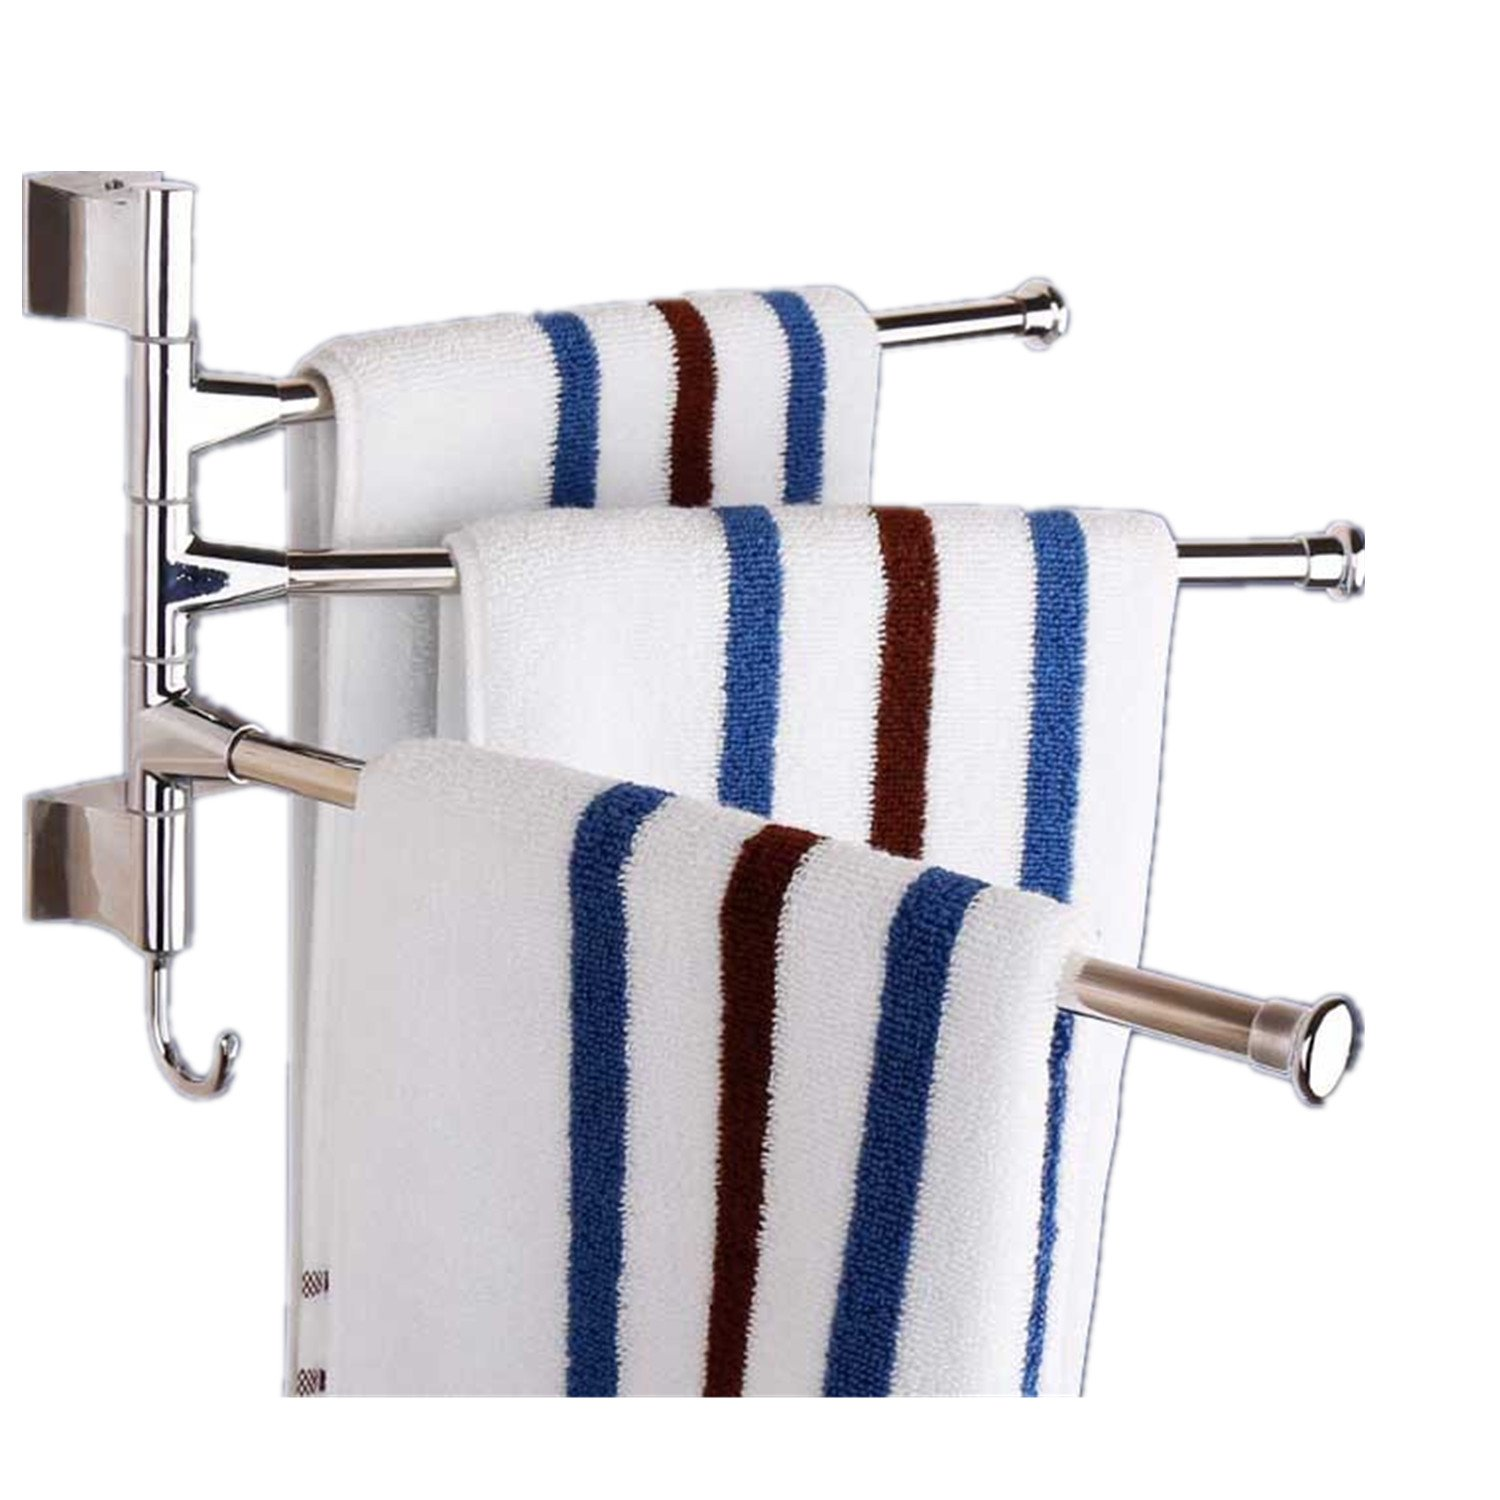 Kitchen Towel Hooks For Towels: Well-wreapped Wall Mounted Towel Rack Stainless Steel